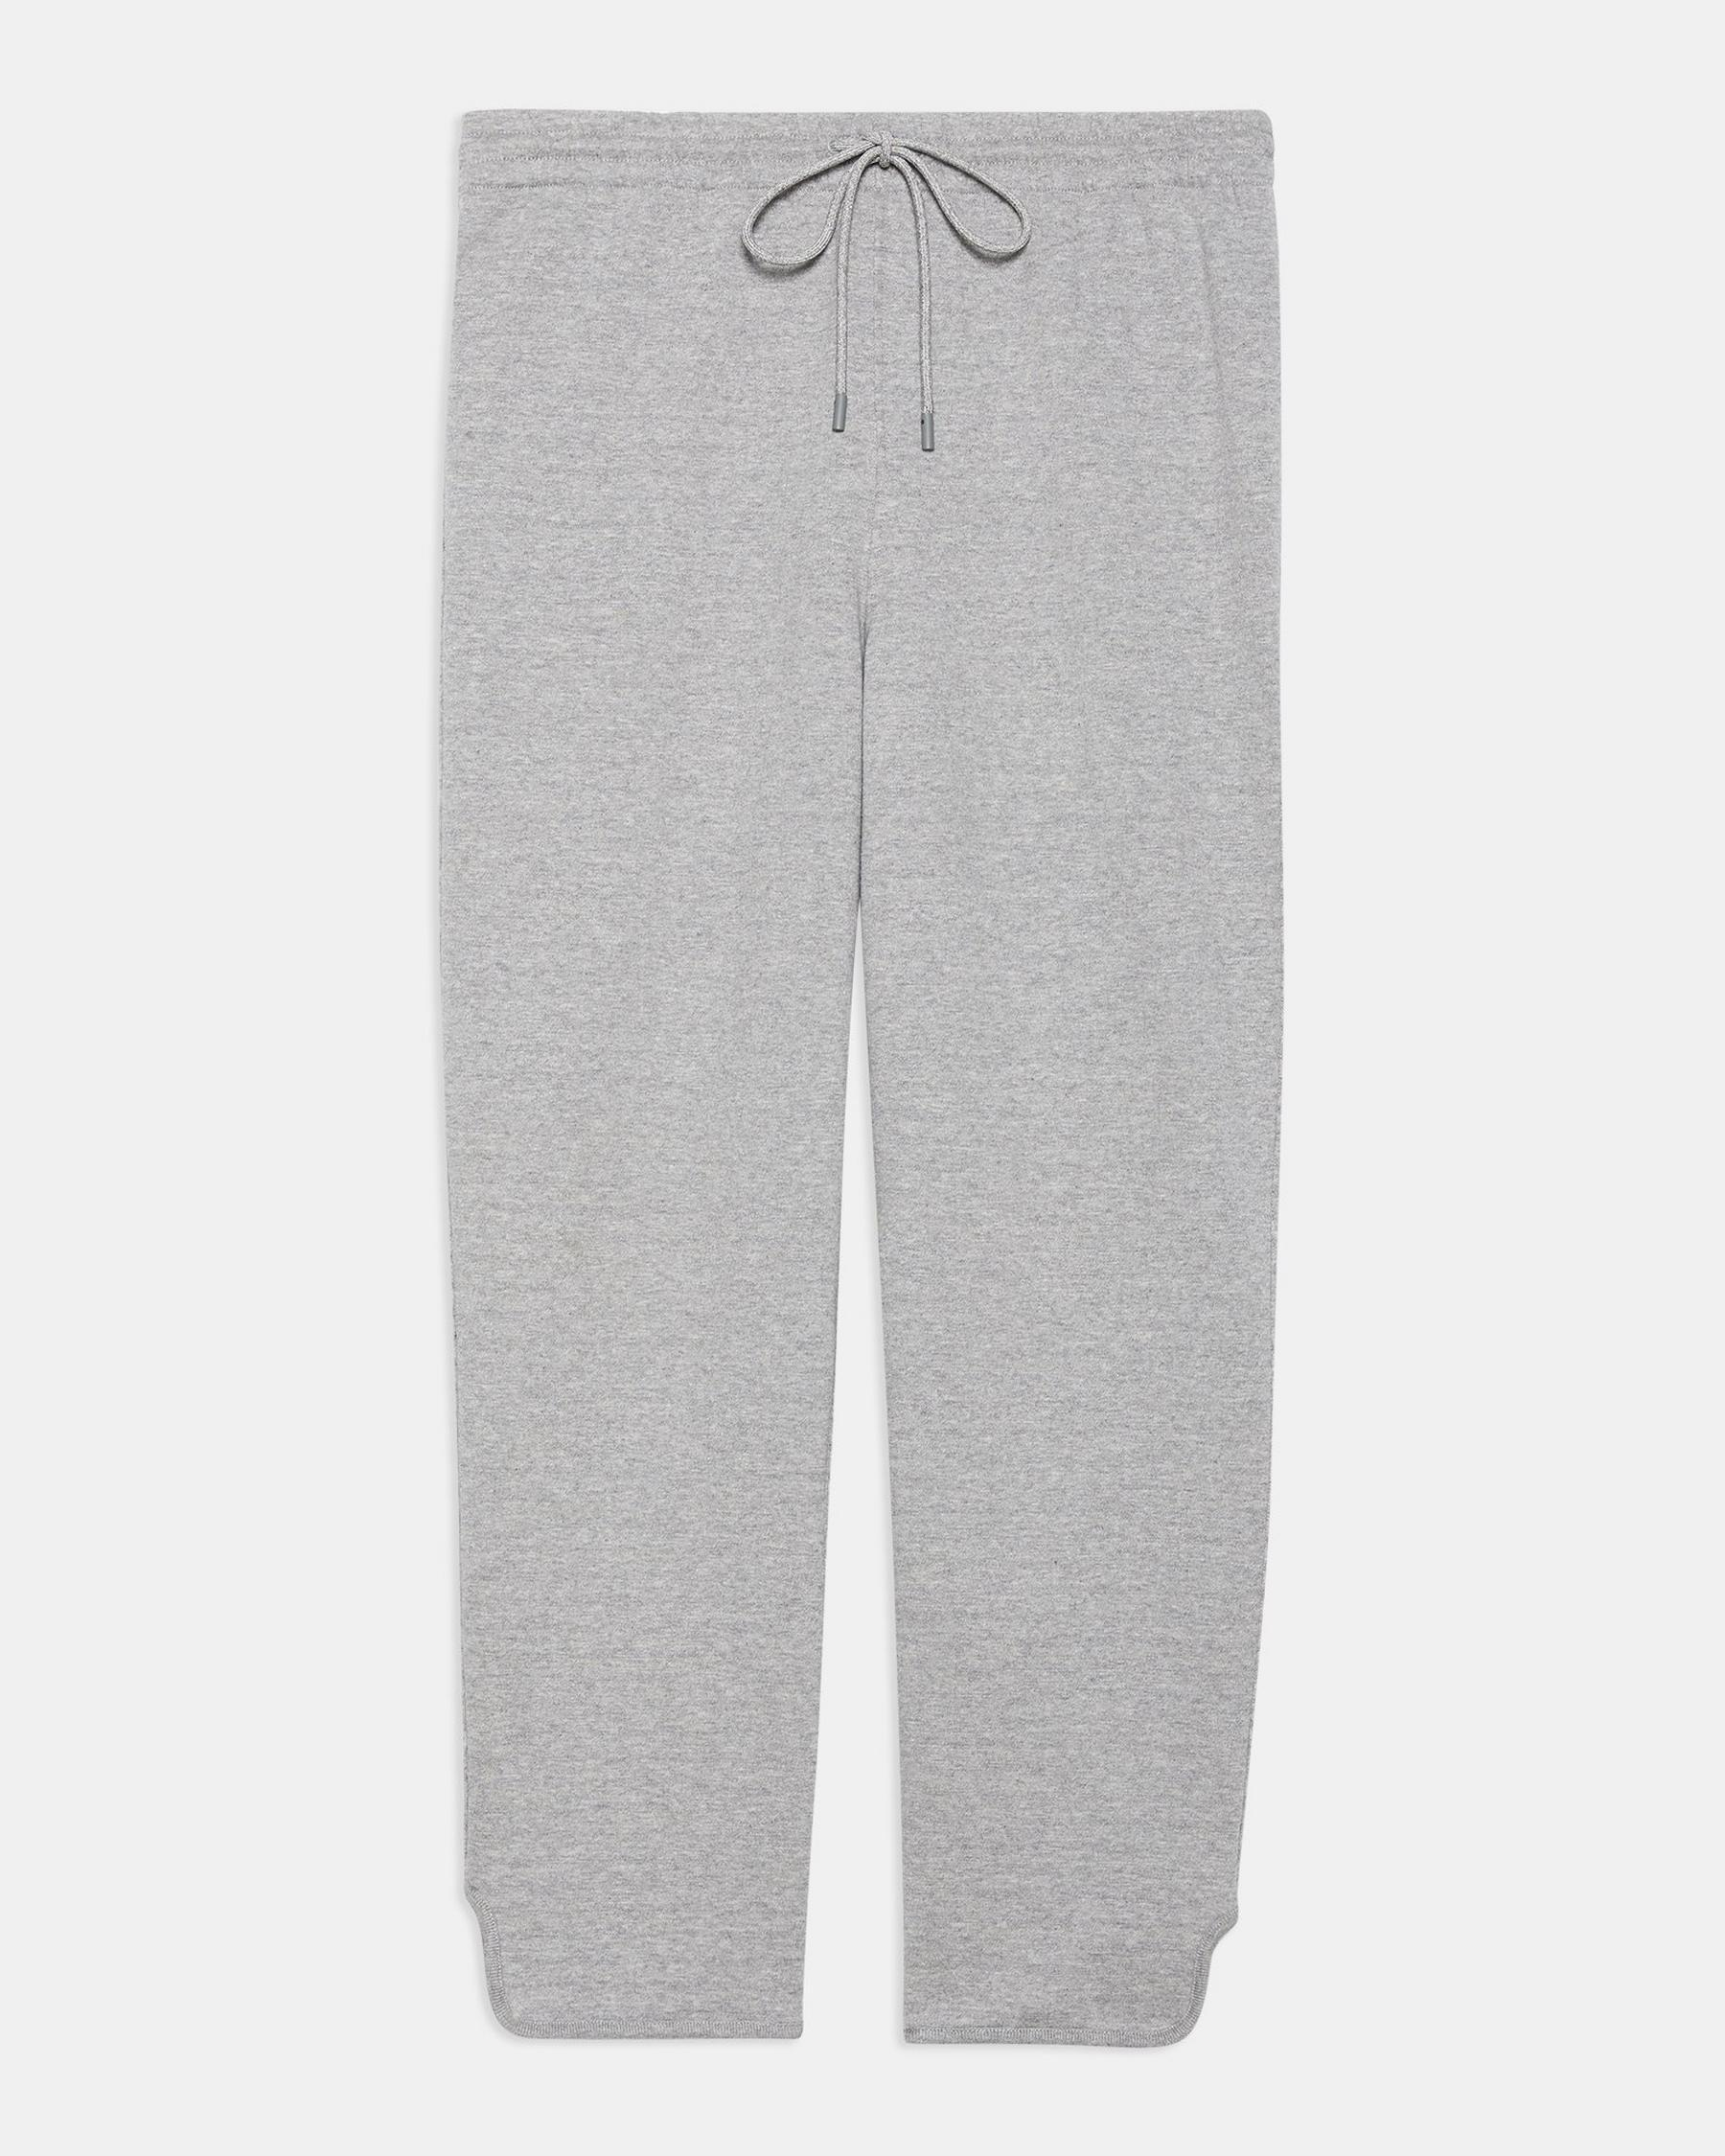 Reversible Notch Jogger in Terry Cotton 6